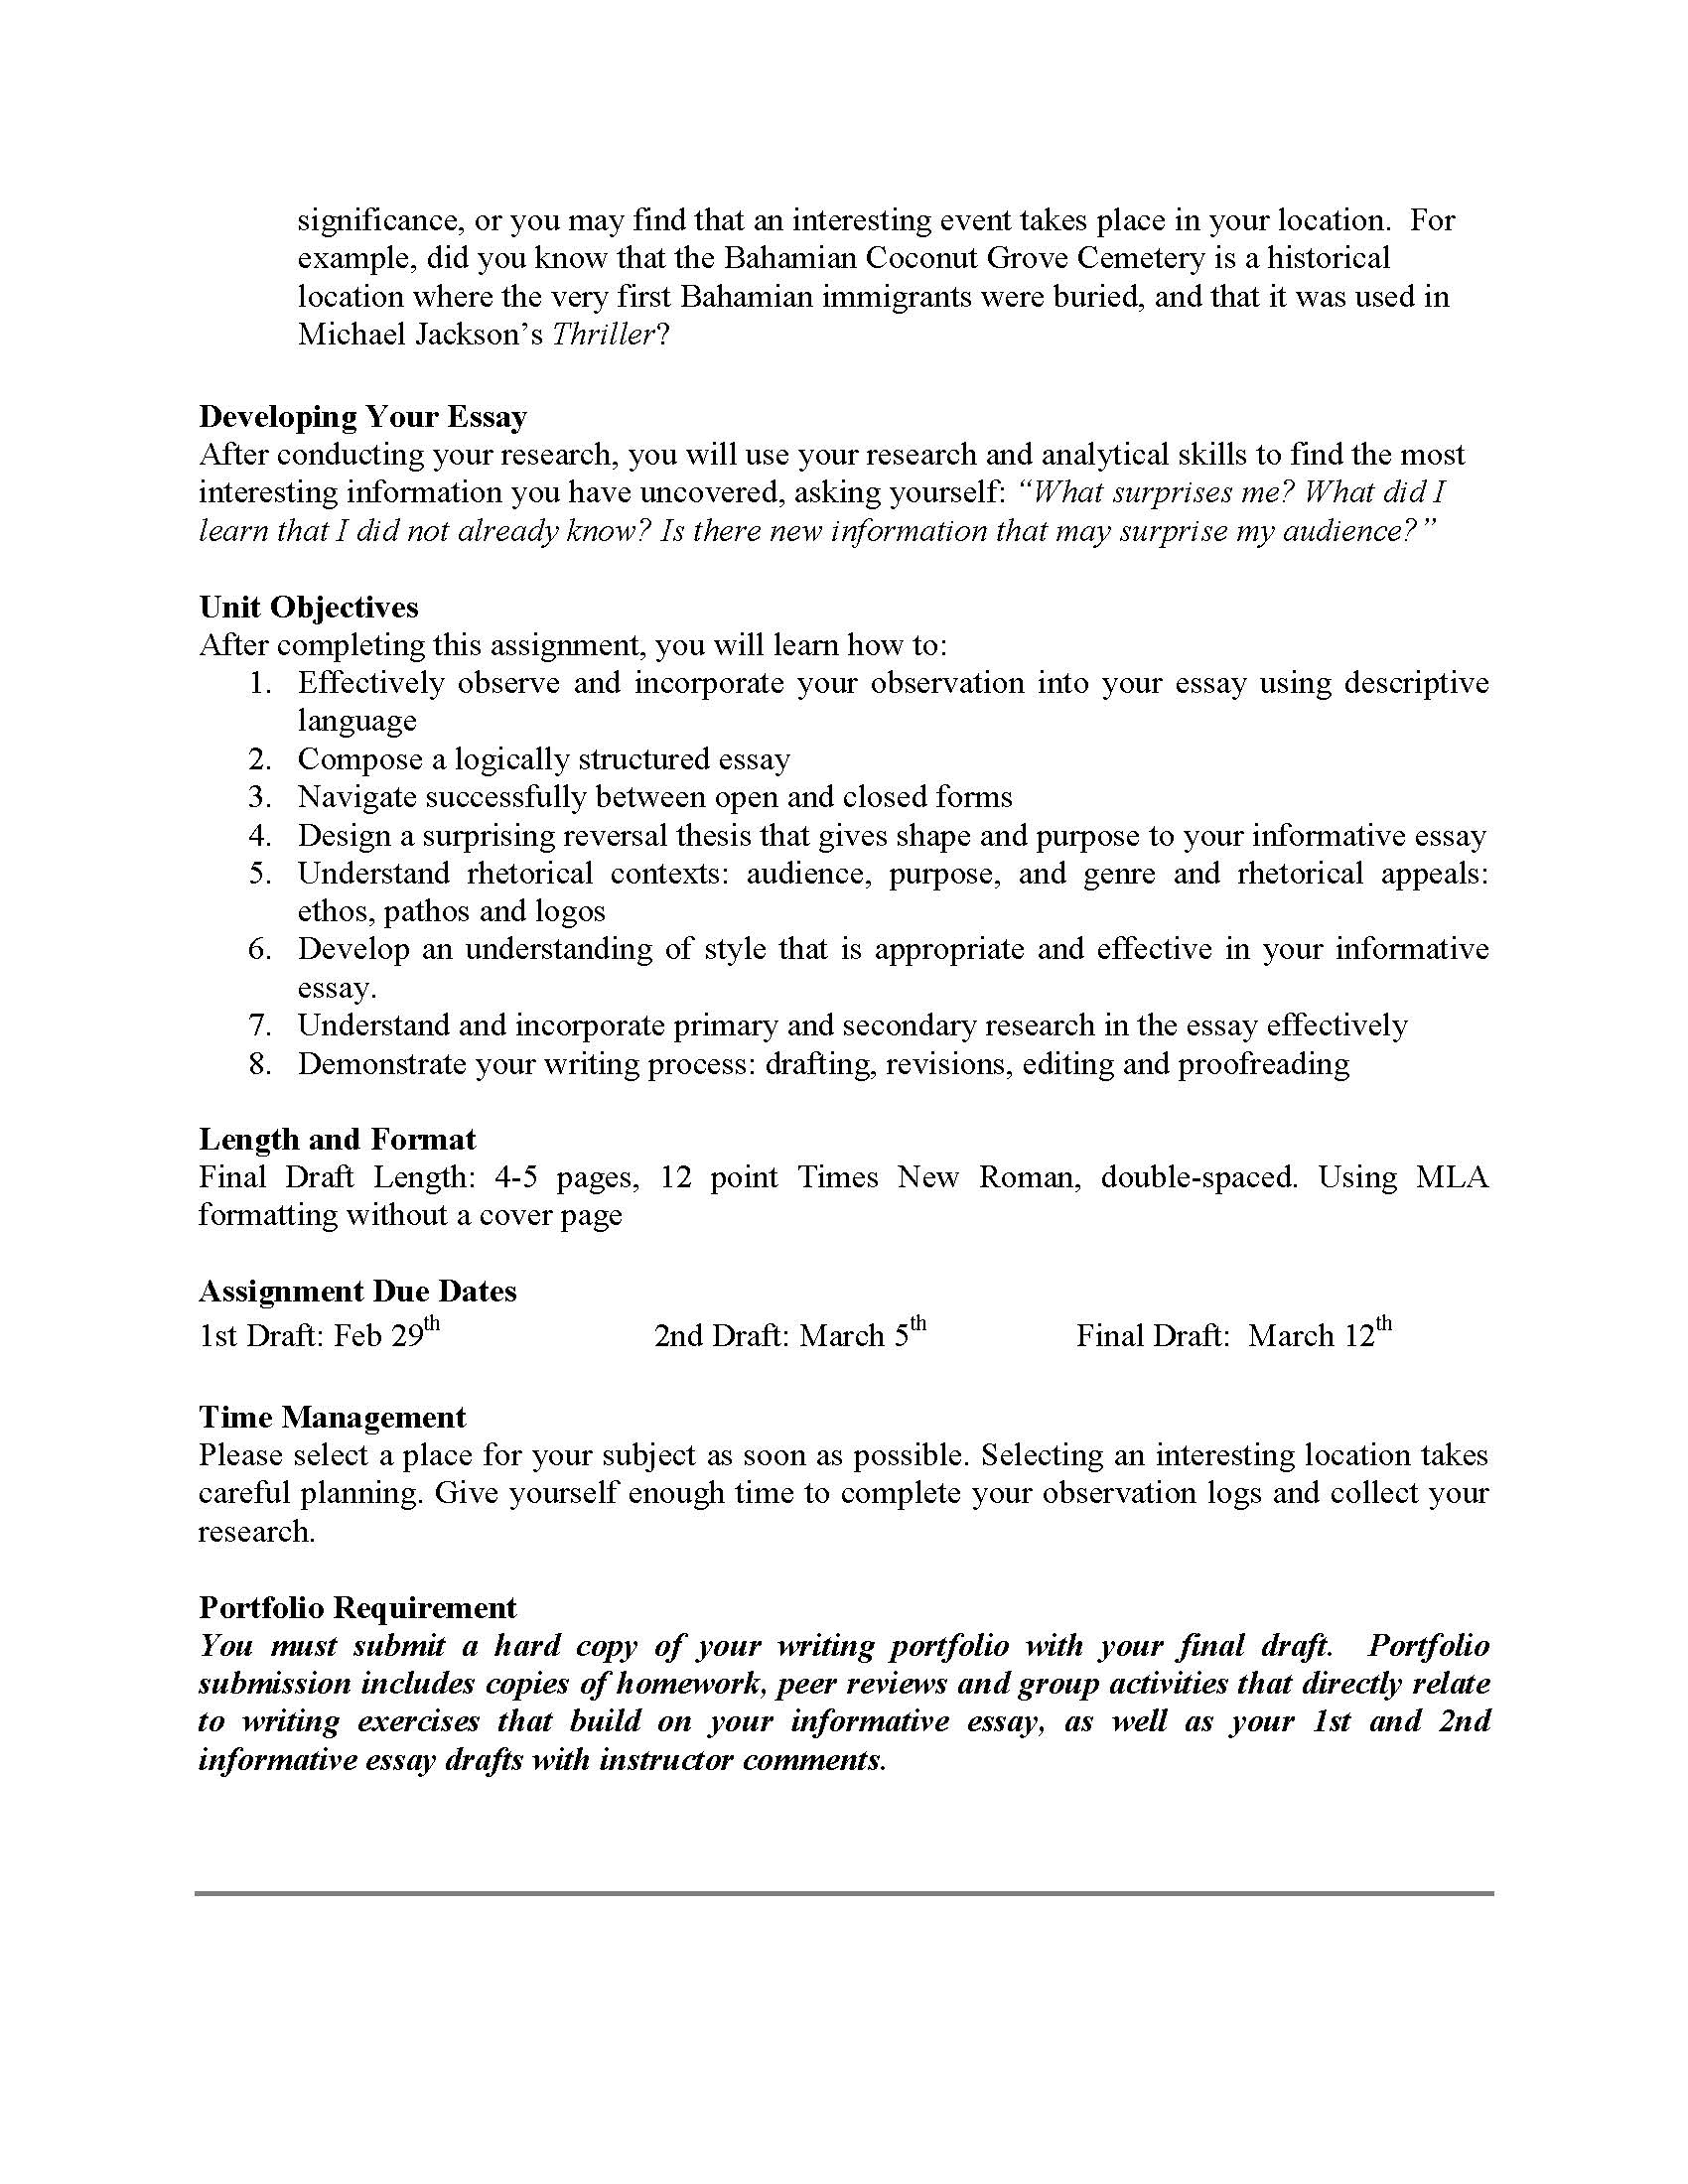 007 Informative Essay Unit Assignment Page 2 Sample Shocking Examples Middle School Outline Example Full